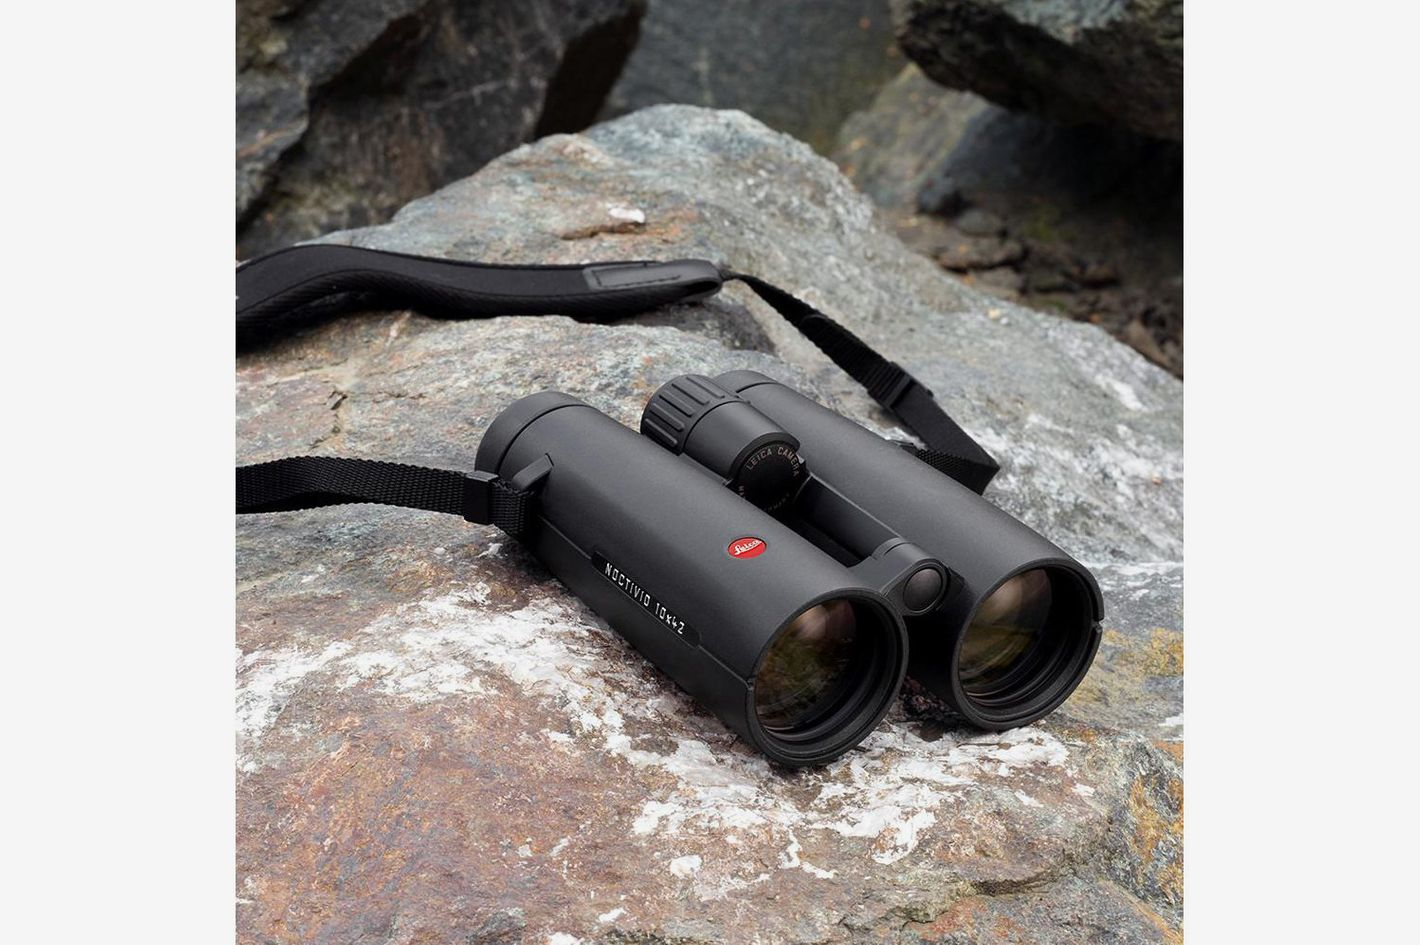 11 Best Binoculars for Birdwatching, Stars, and More 2018